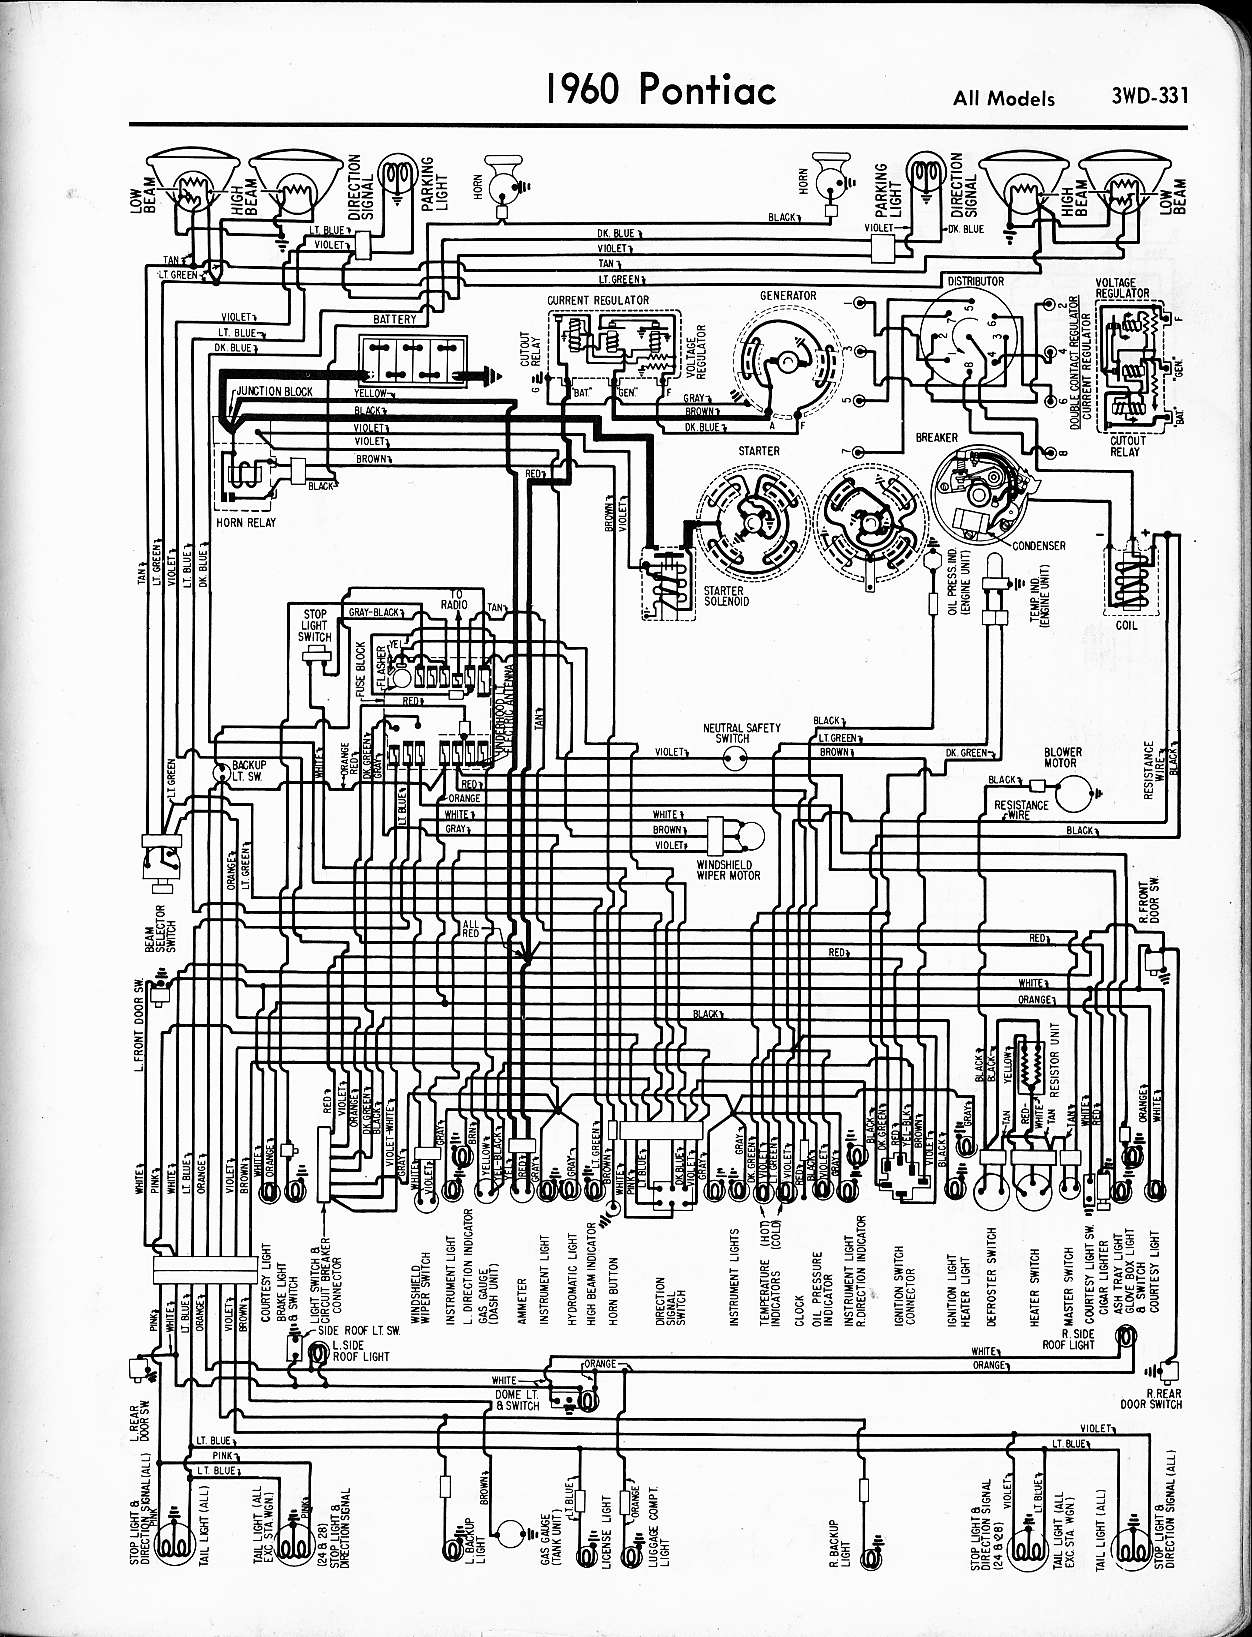 57 Pontiac Wiring Diagram - Wiring Diagram Img on